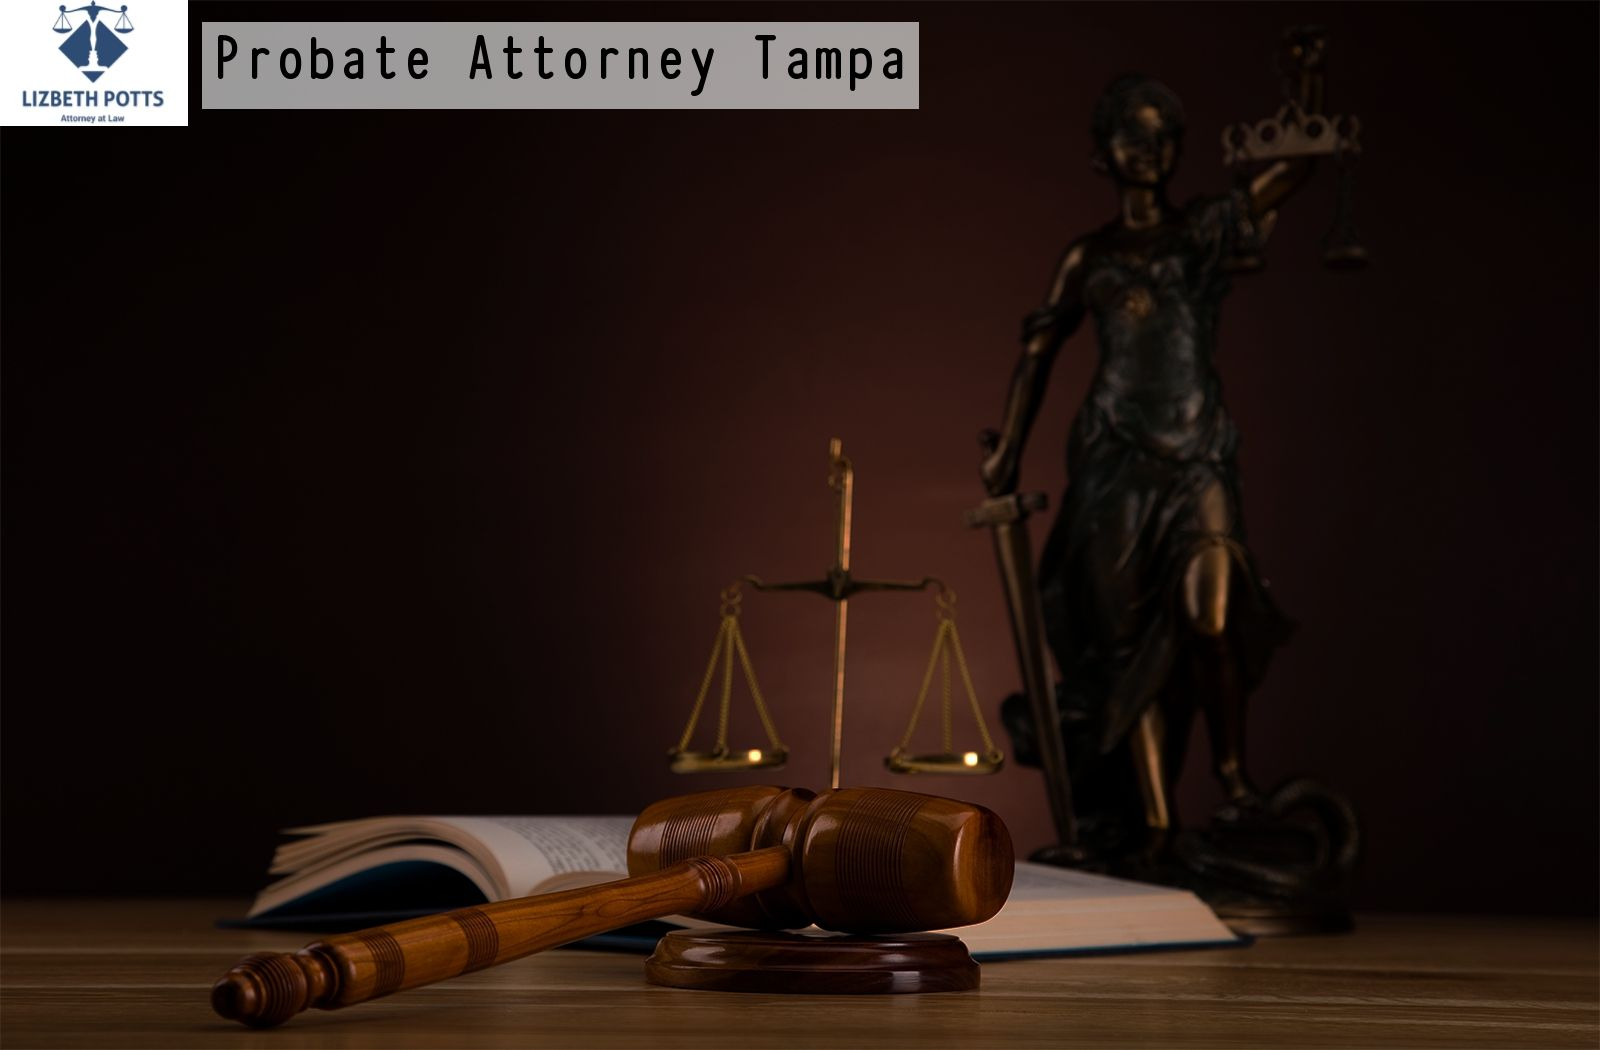 Looking for the Best Probate Attorney Tampa? Contact